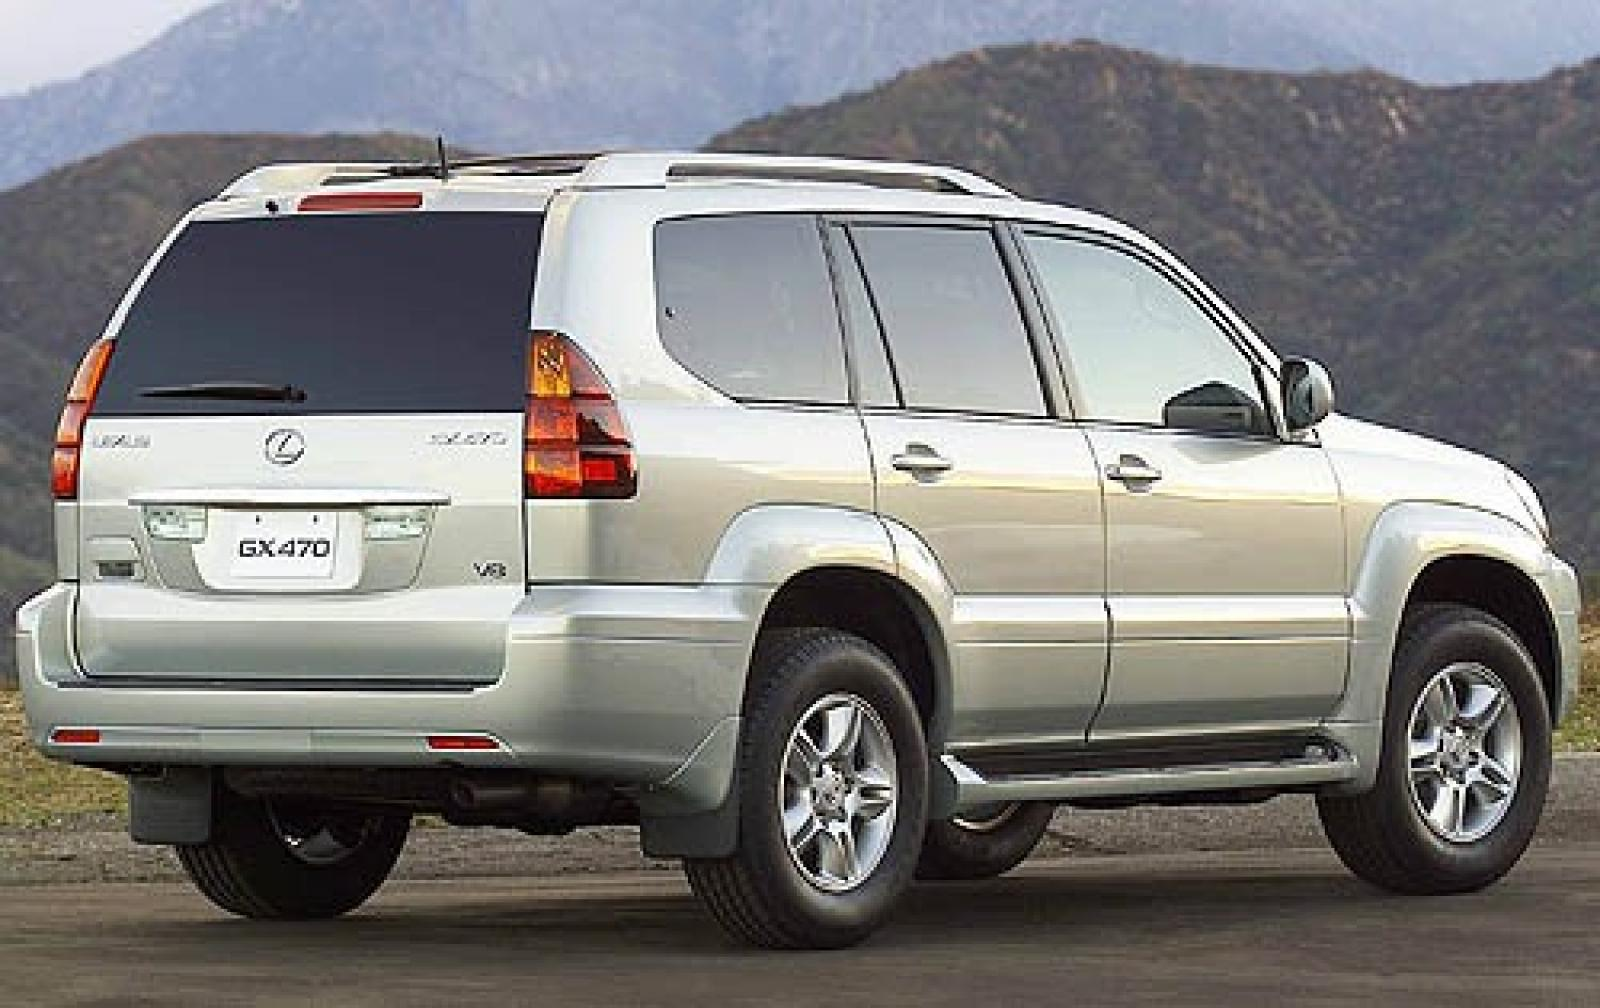 2009 Lexus Gx 470 Information And Photos Zombiedrive